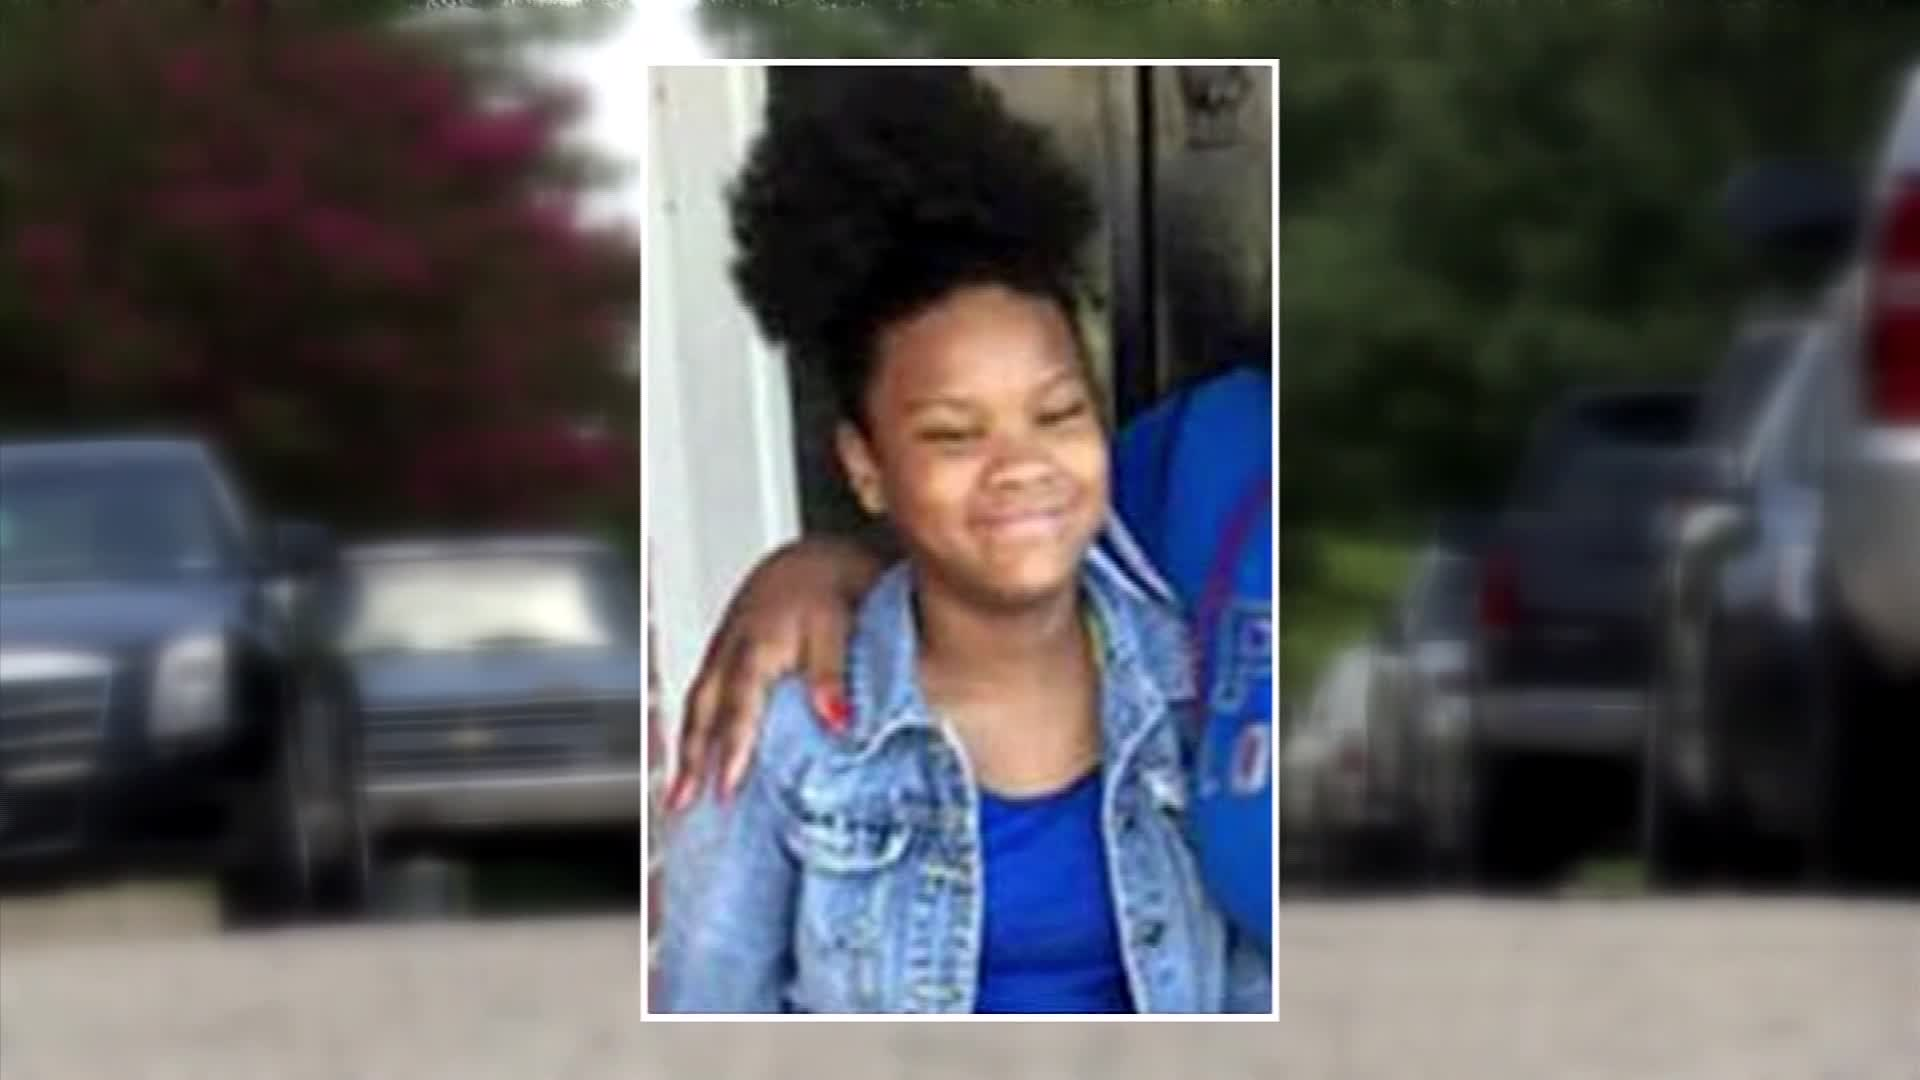 Lancaster police issue an Amber Alert for 13-year-old Shavon Le'Faye Randle, who went missing at about 10:30 a.m. Wednesday.